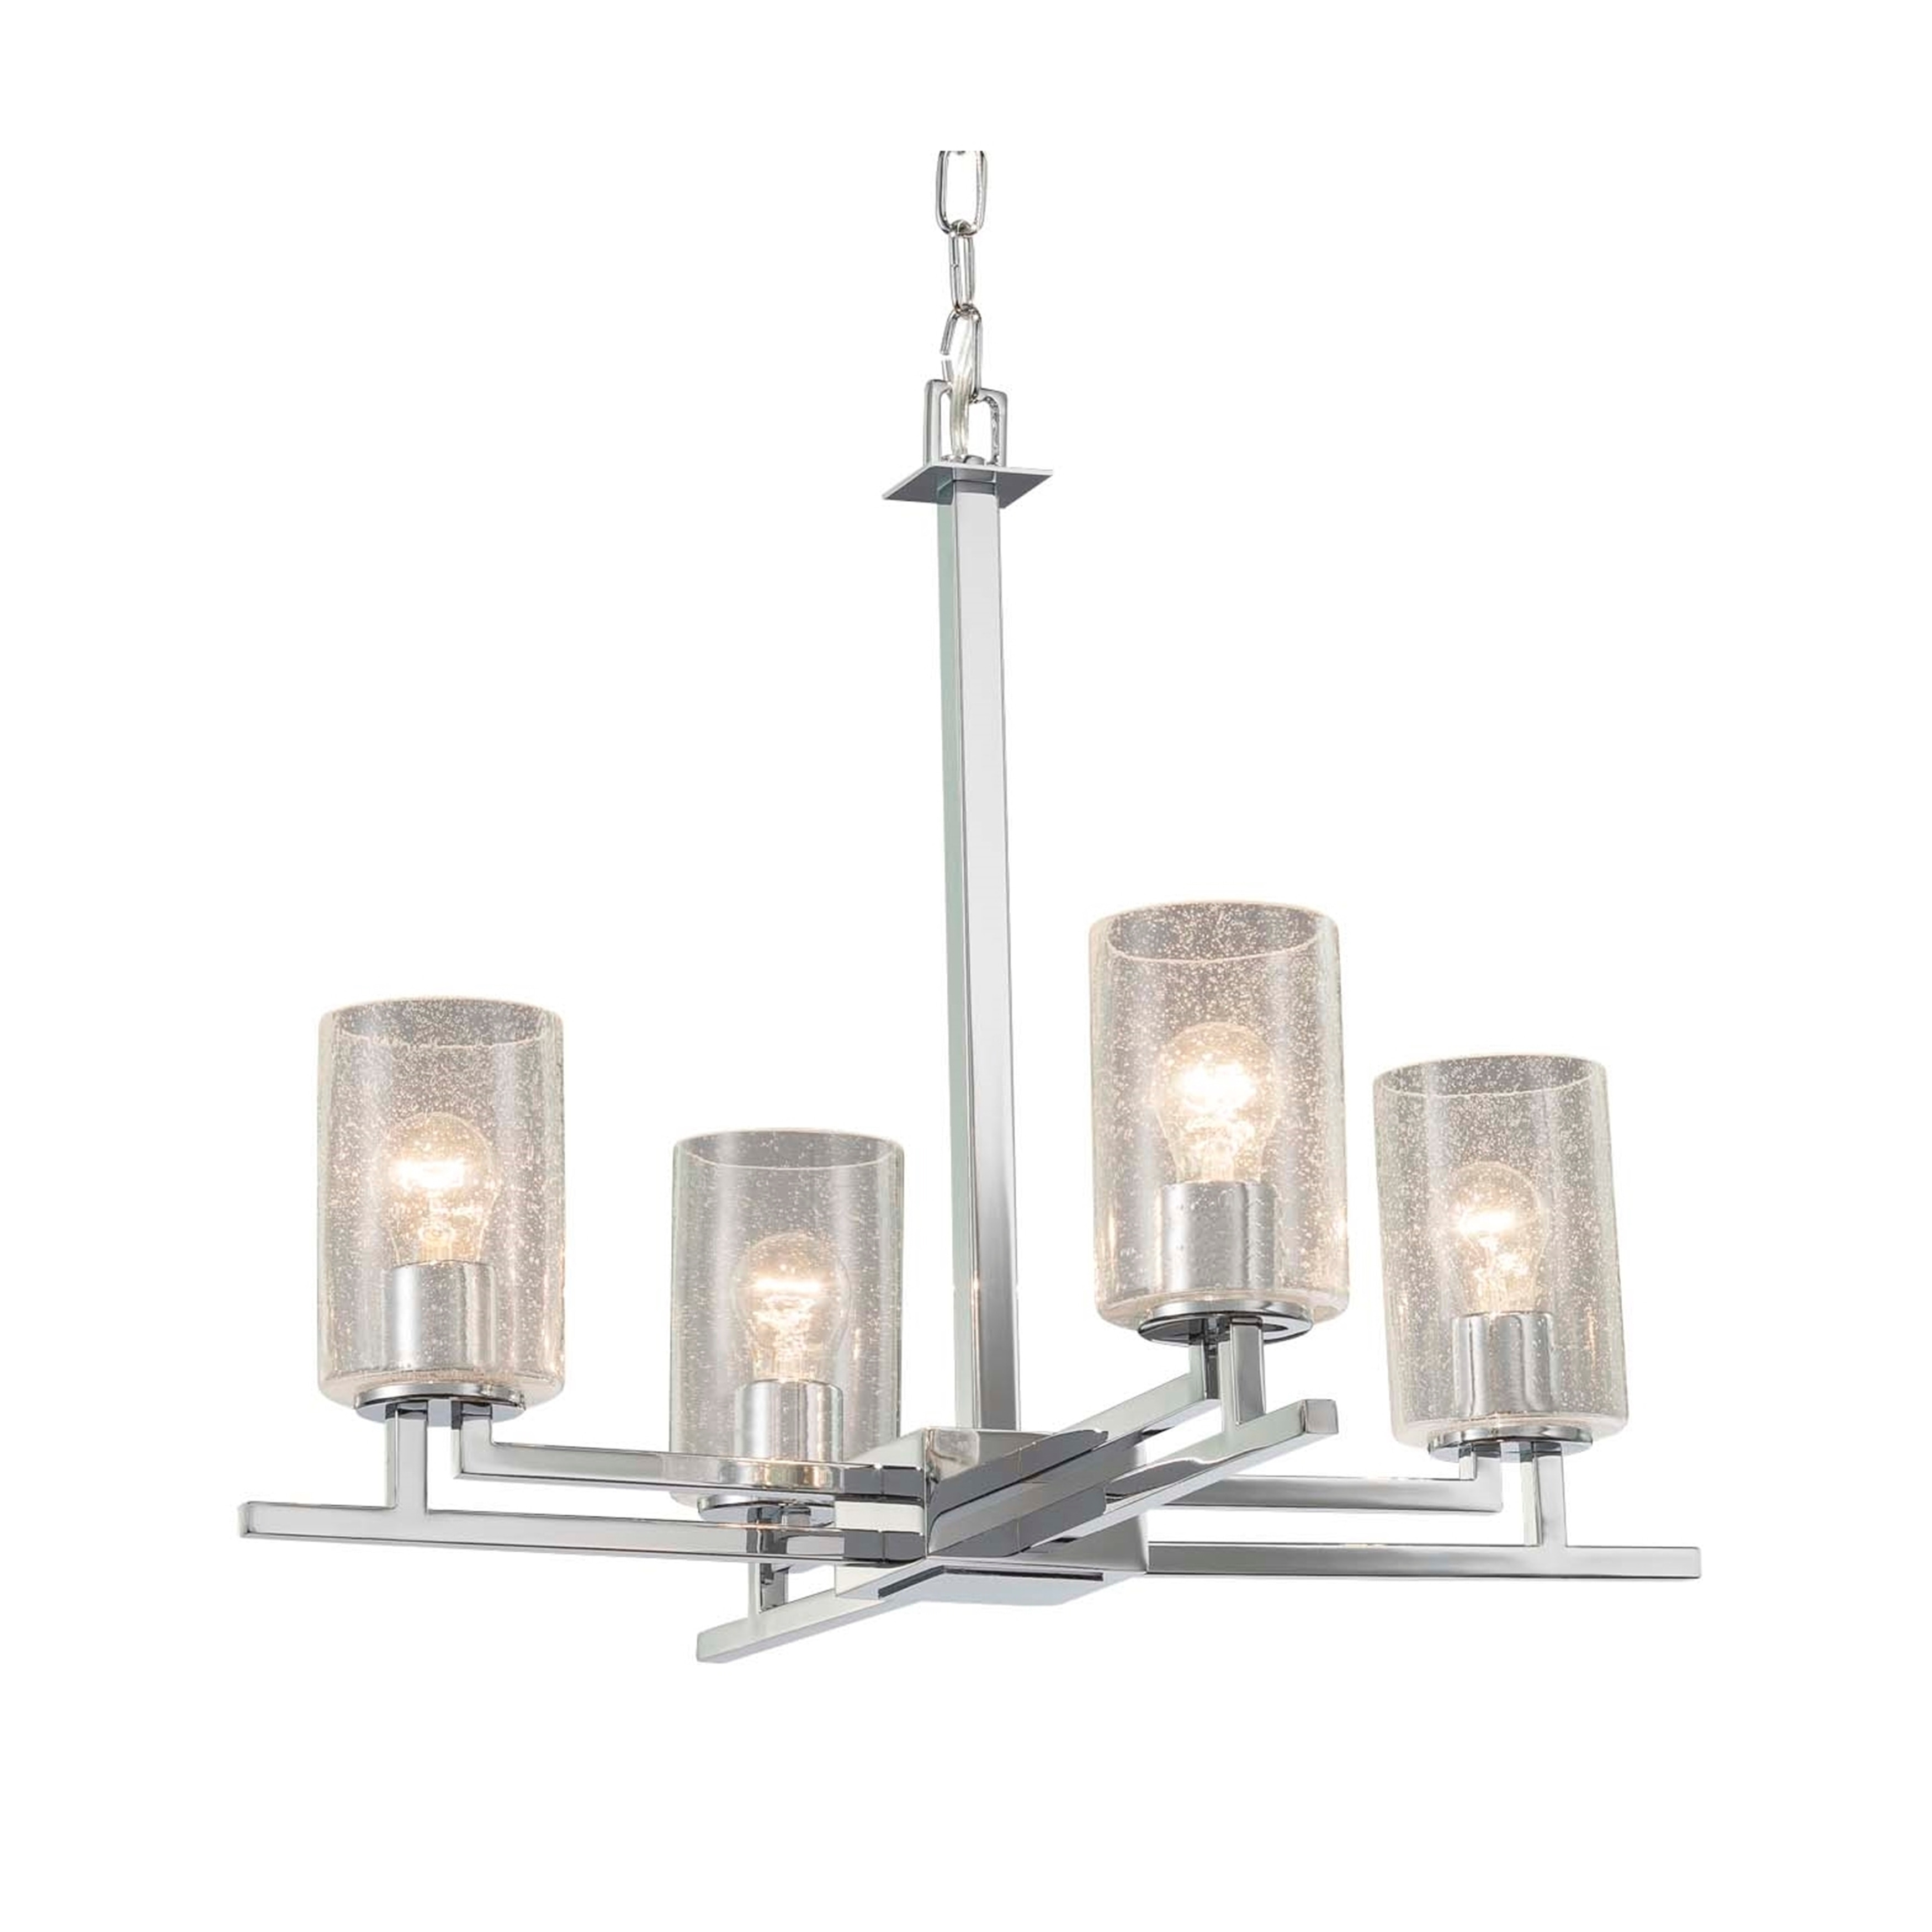 Justice Design Fusion Aero 4 Light Polished Chrome Chandelier Seeded Cylinder W Flat Rim Shade Overstock 21297340